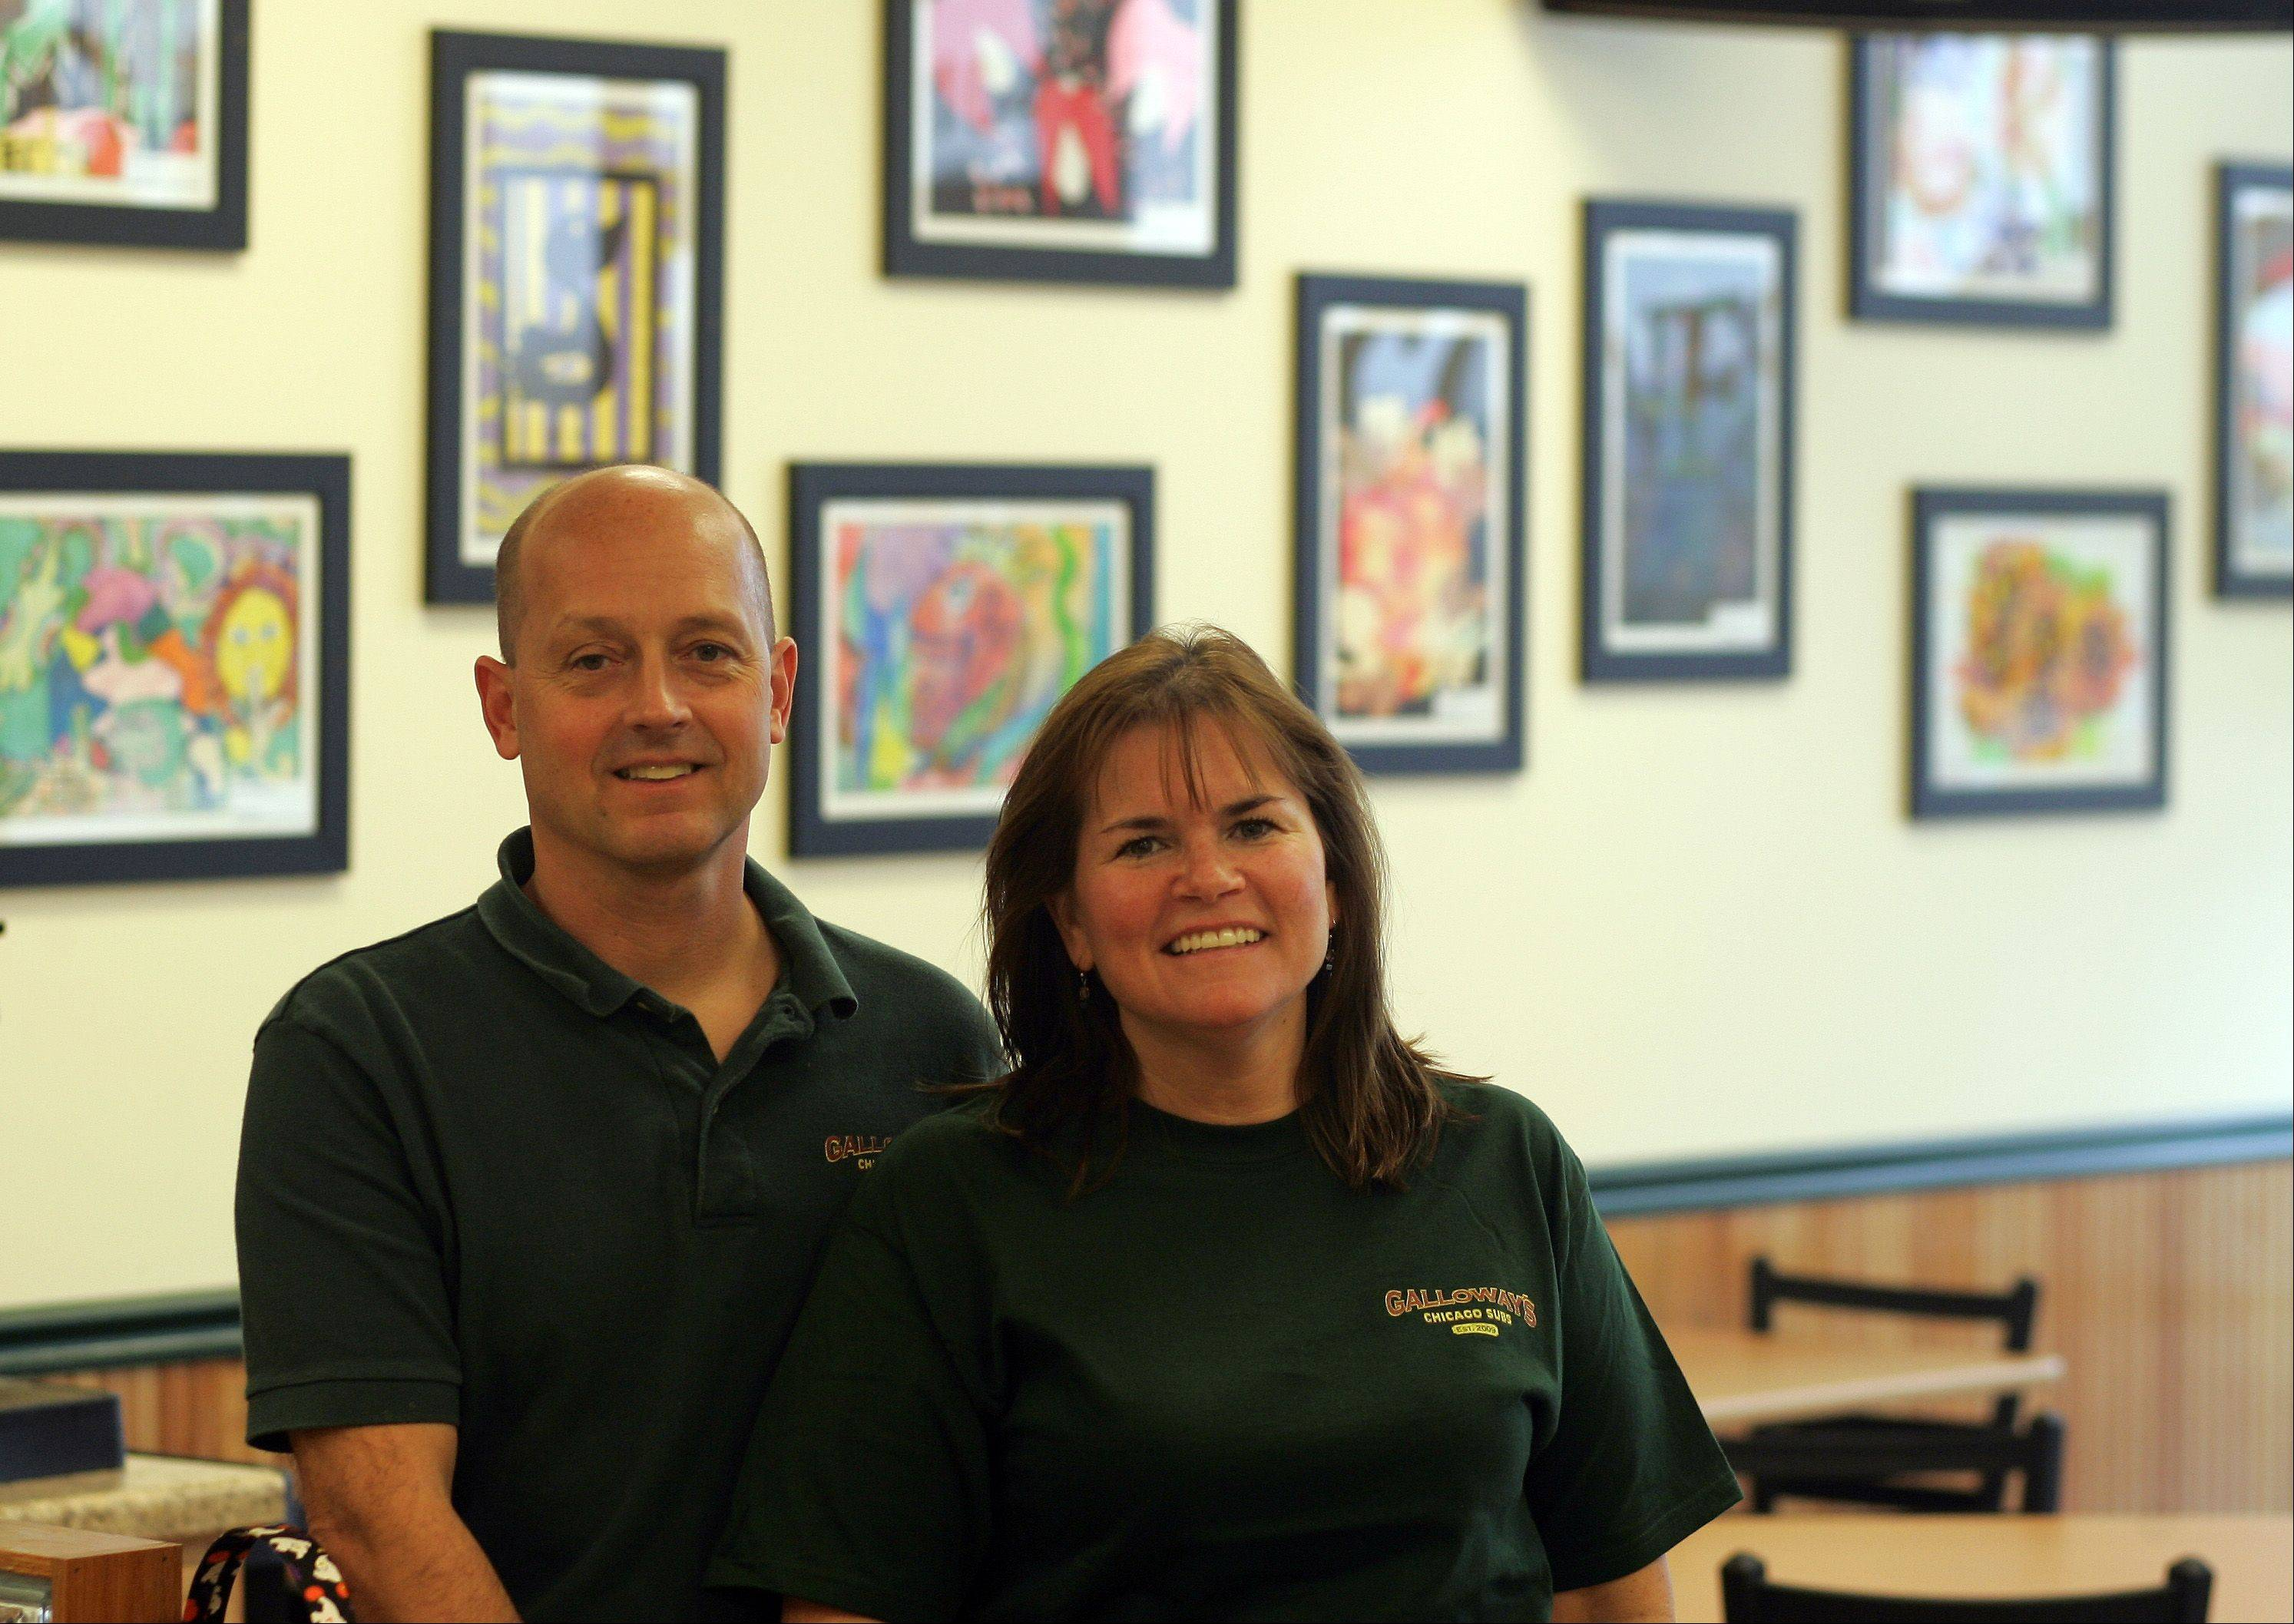 T.J. and Judy Galloway are the owners of Galloway's Chicago Subs in Crystal Lake.